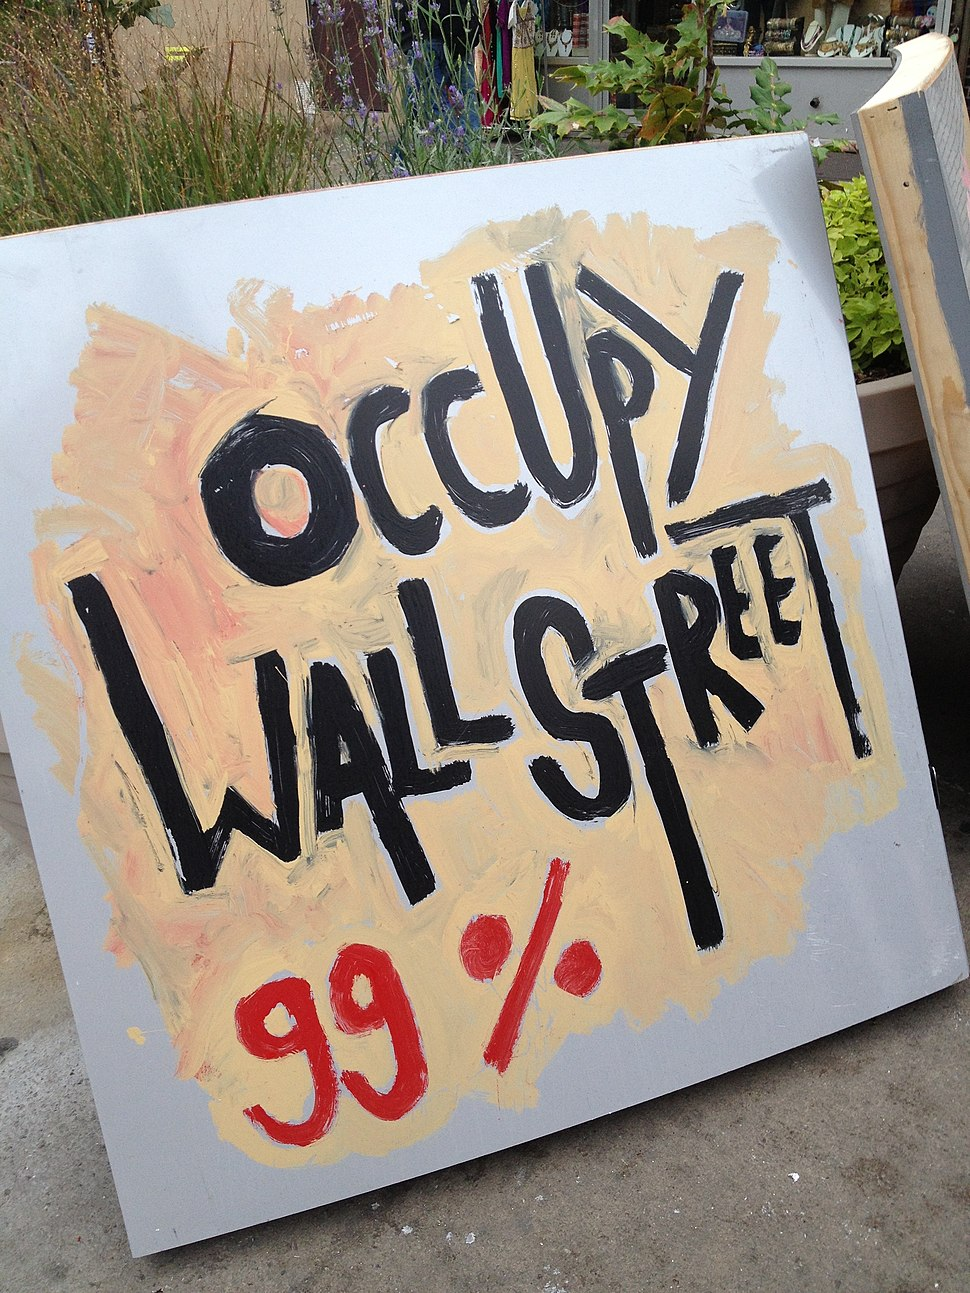 Occupy Wall Street sign in Queens, NYC